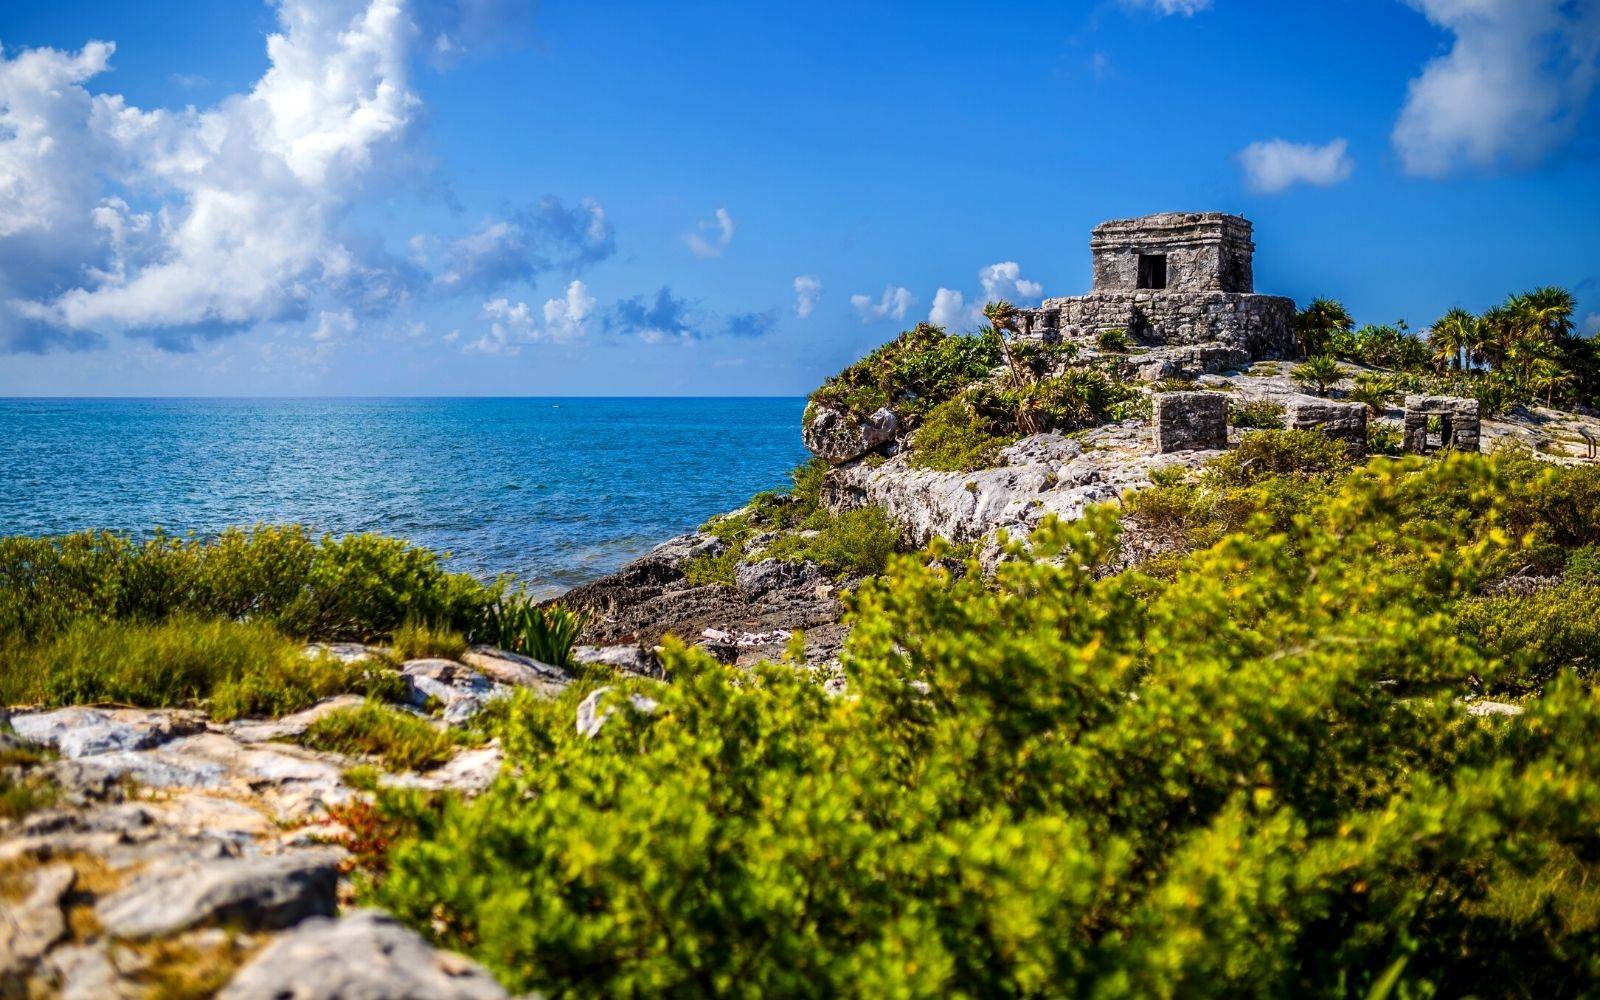 How To Visit The Tulum Ruins in Mexico